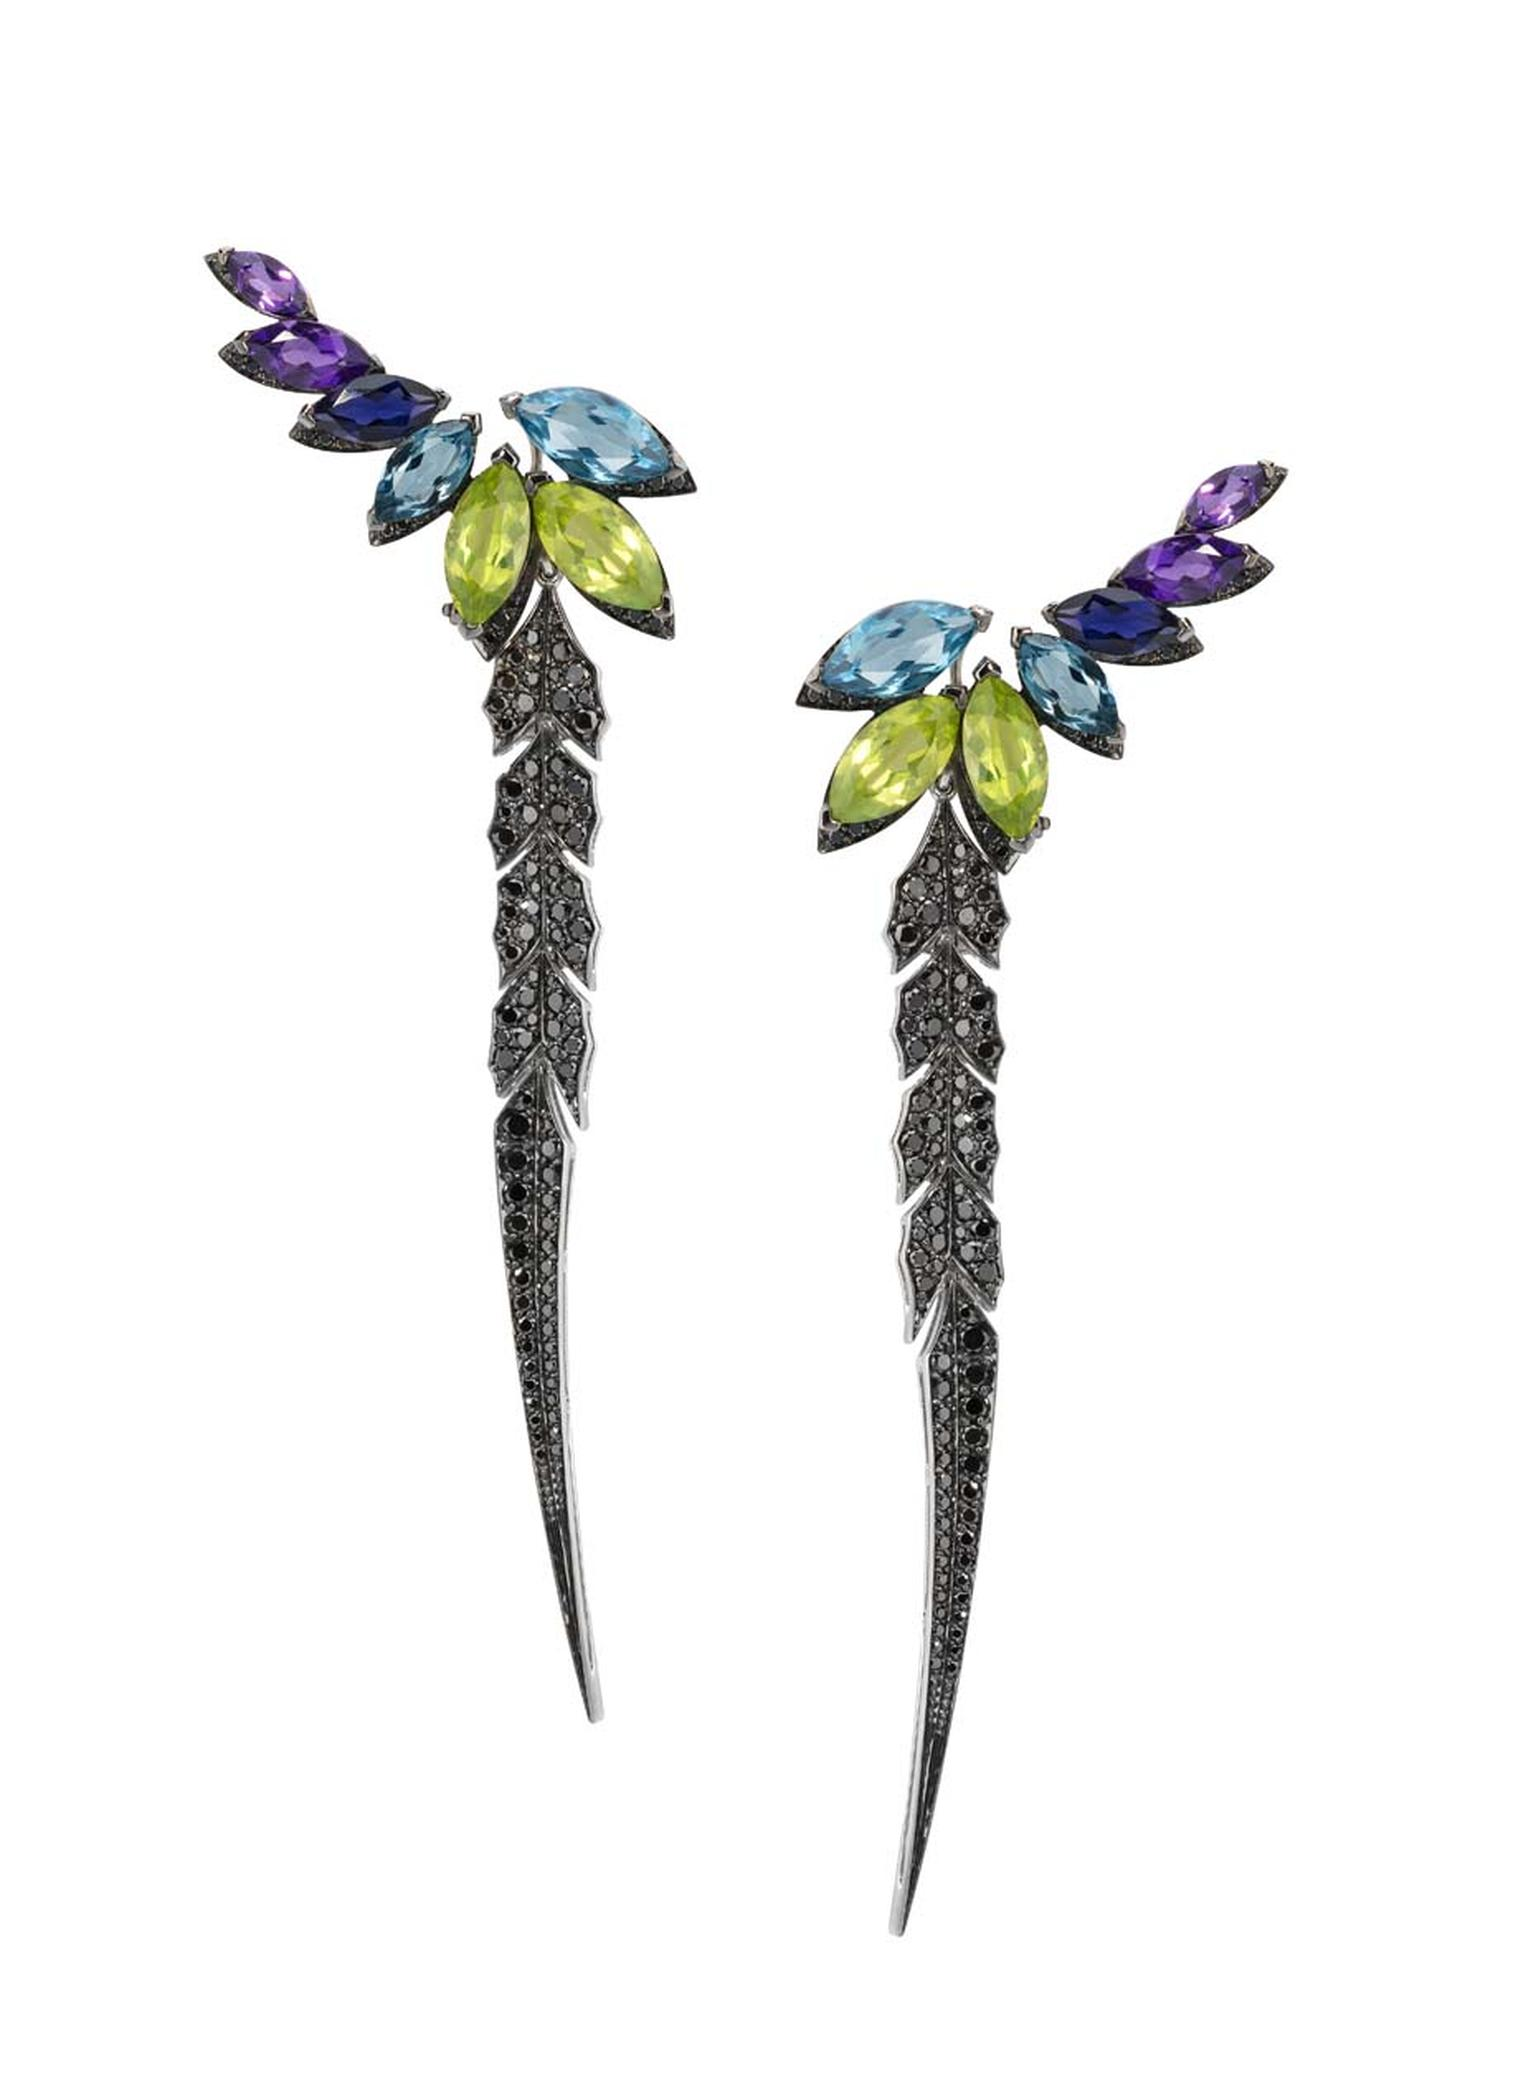 Stephen Webster Magnipheasant earrings with topaz, amethyst and peridot, surrounded by a border of pavé black diamonds